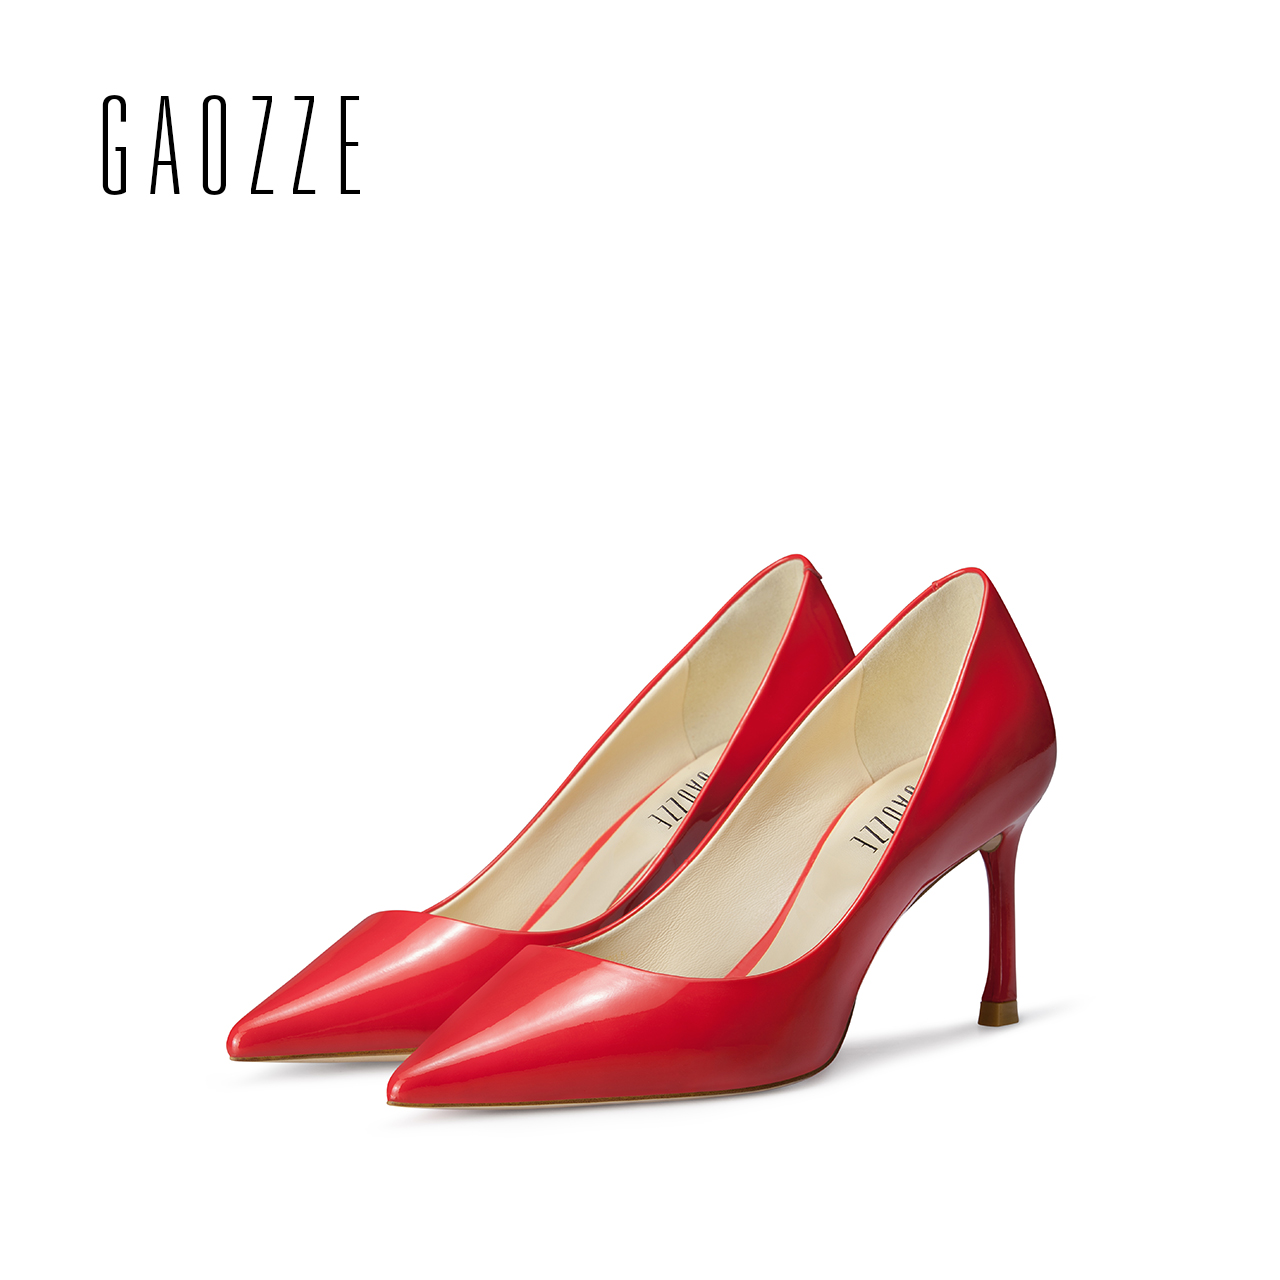 GAOZZE 2017 spring summer new pointed toe high-heeled wedding shoes shallow mouth single women red high heels pumps 7cm 2017 new spring summer shoes for women high heeled wedding pointed toe fashion women s pumps ladies zapatos mujer high heels 9cm